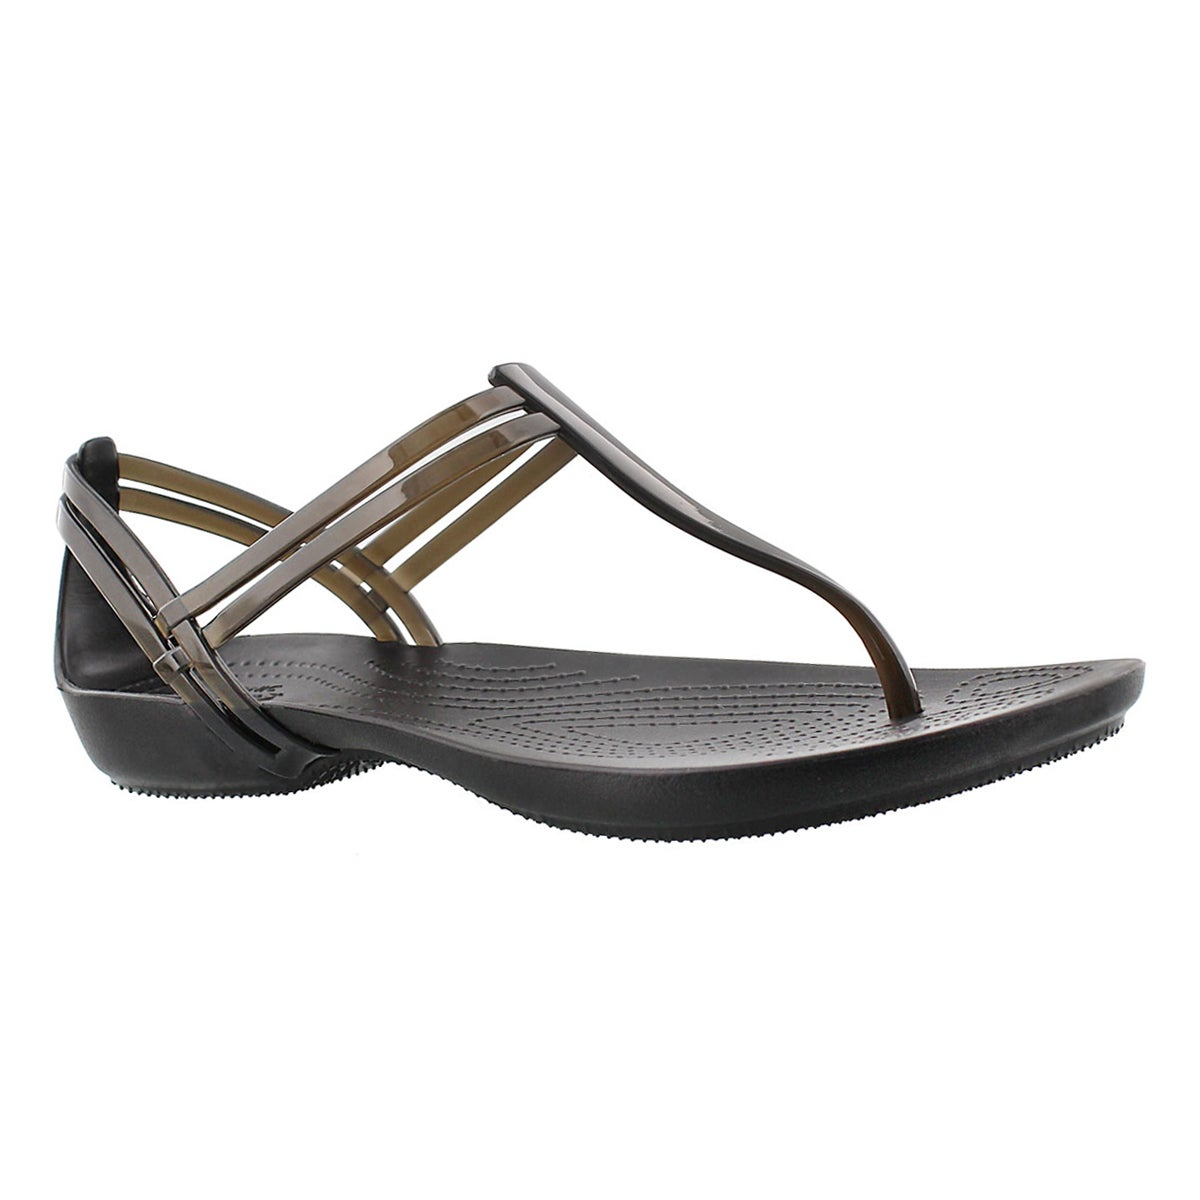 Women's ISABELLA T-STRAP black thong sandals